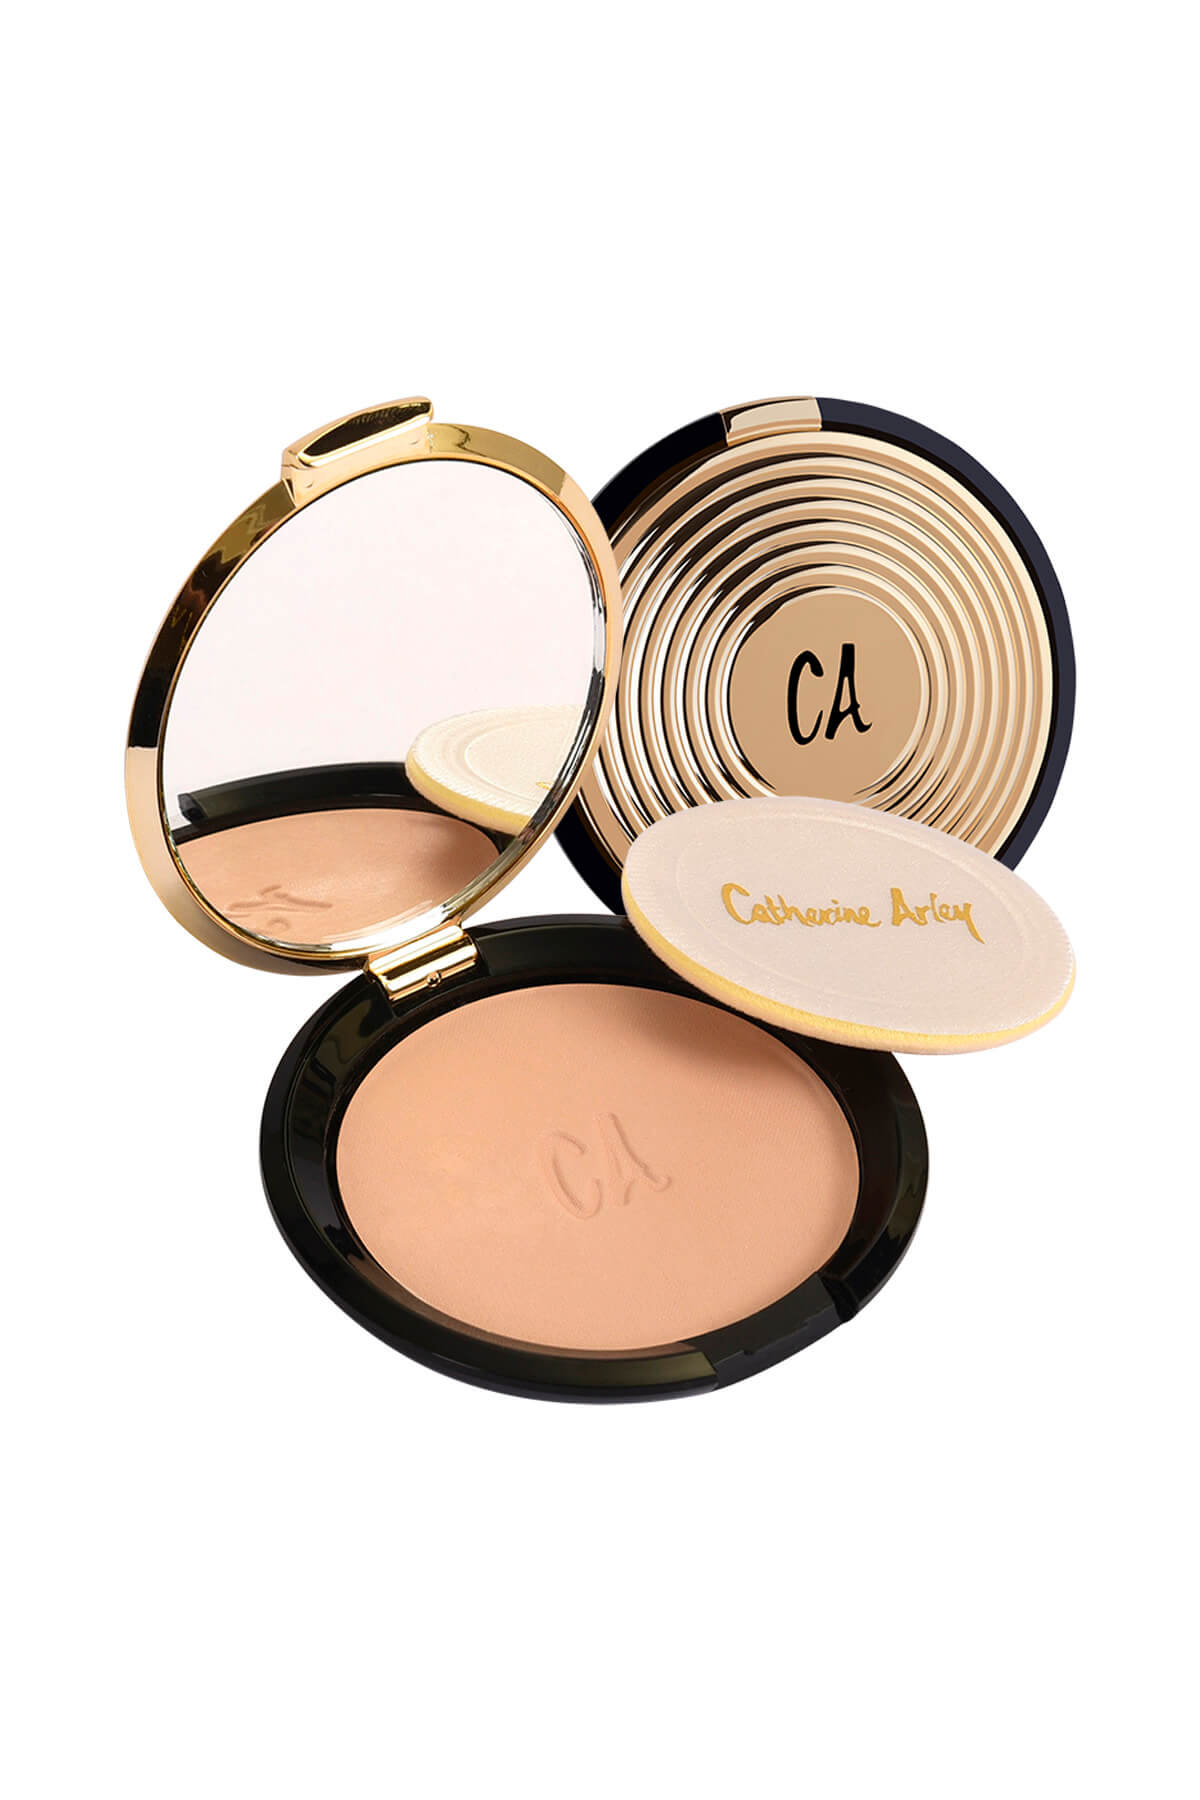 Catherine Arley Gold Pudra - Gold Compact Powder 102 8691167474838 1